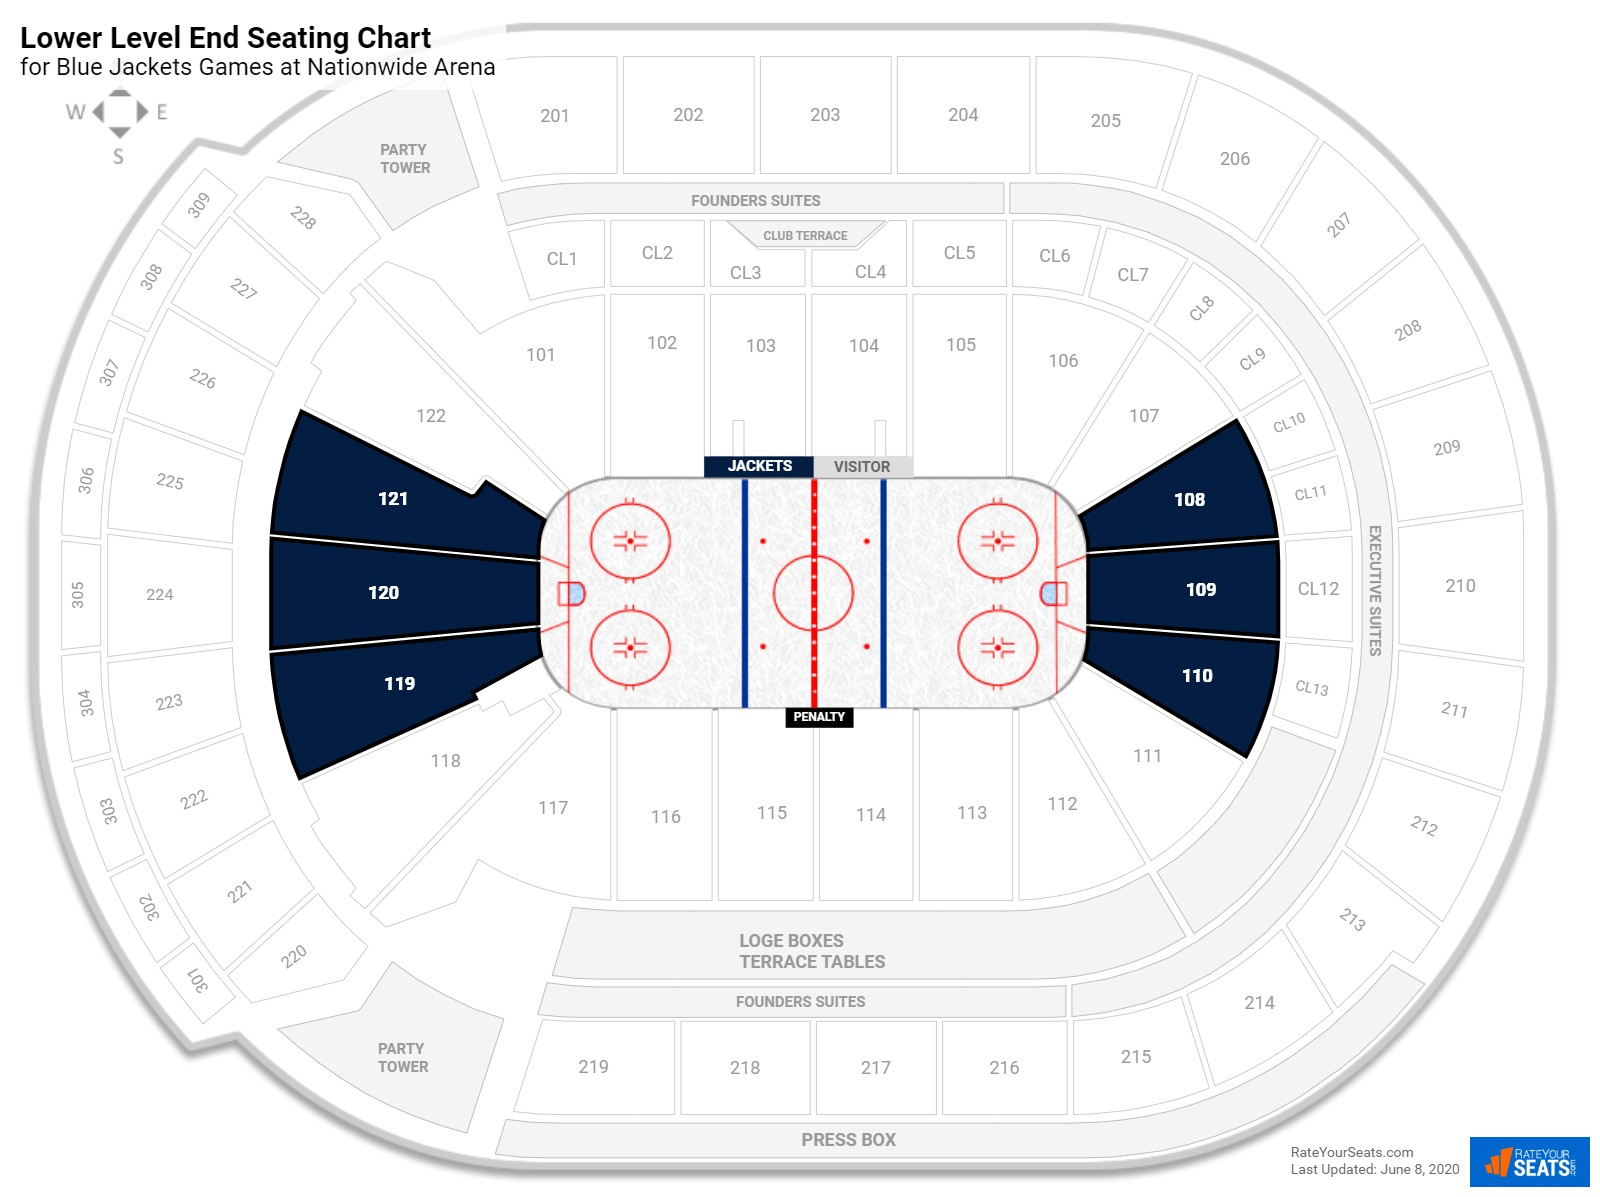 Nationwide Arena Lower Level Behind the Net seating chart